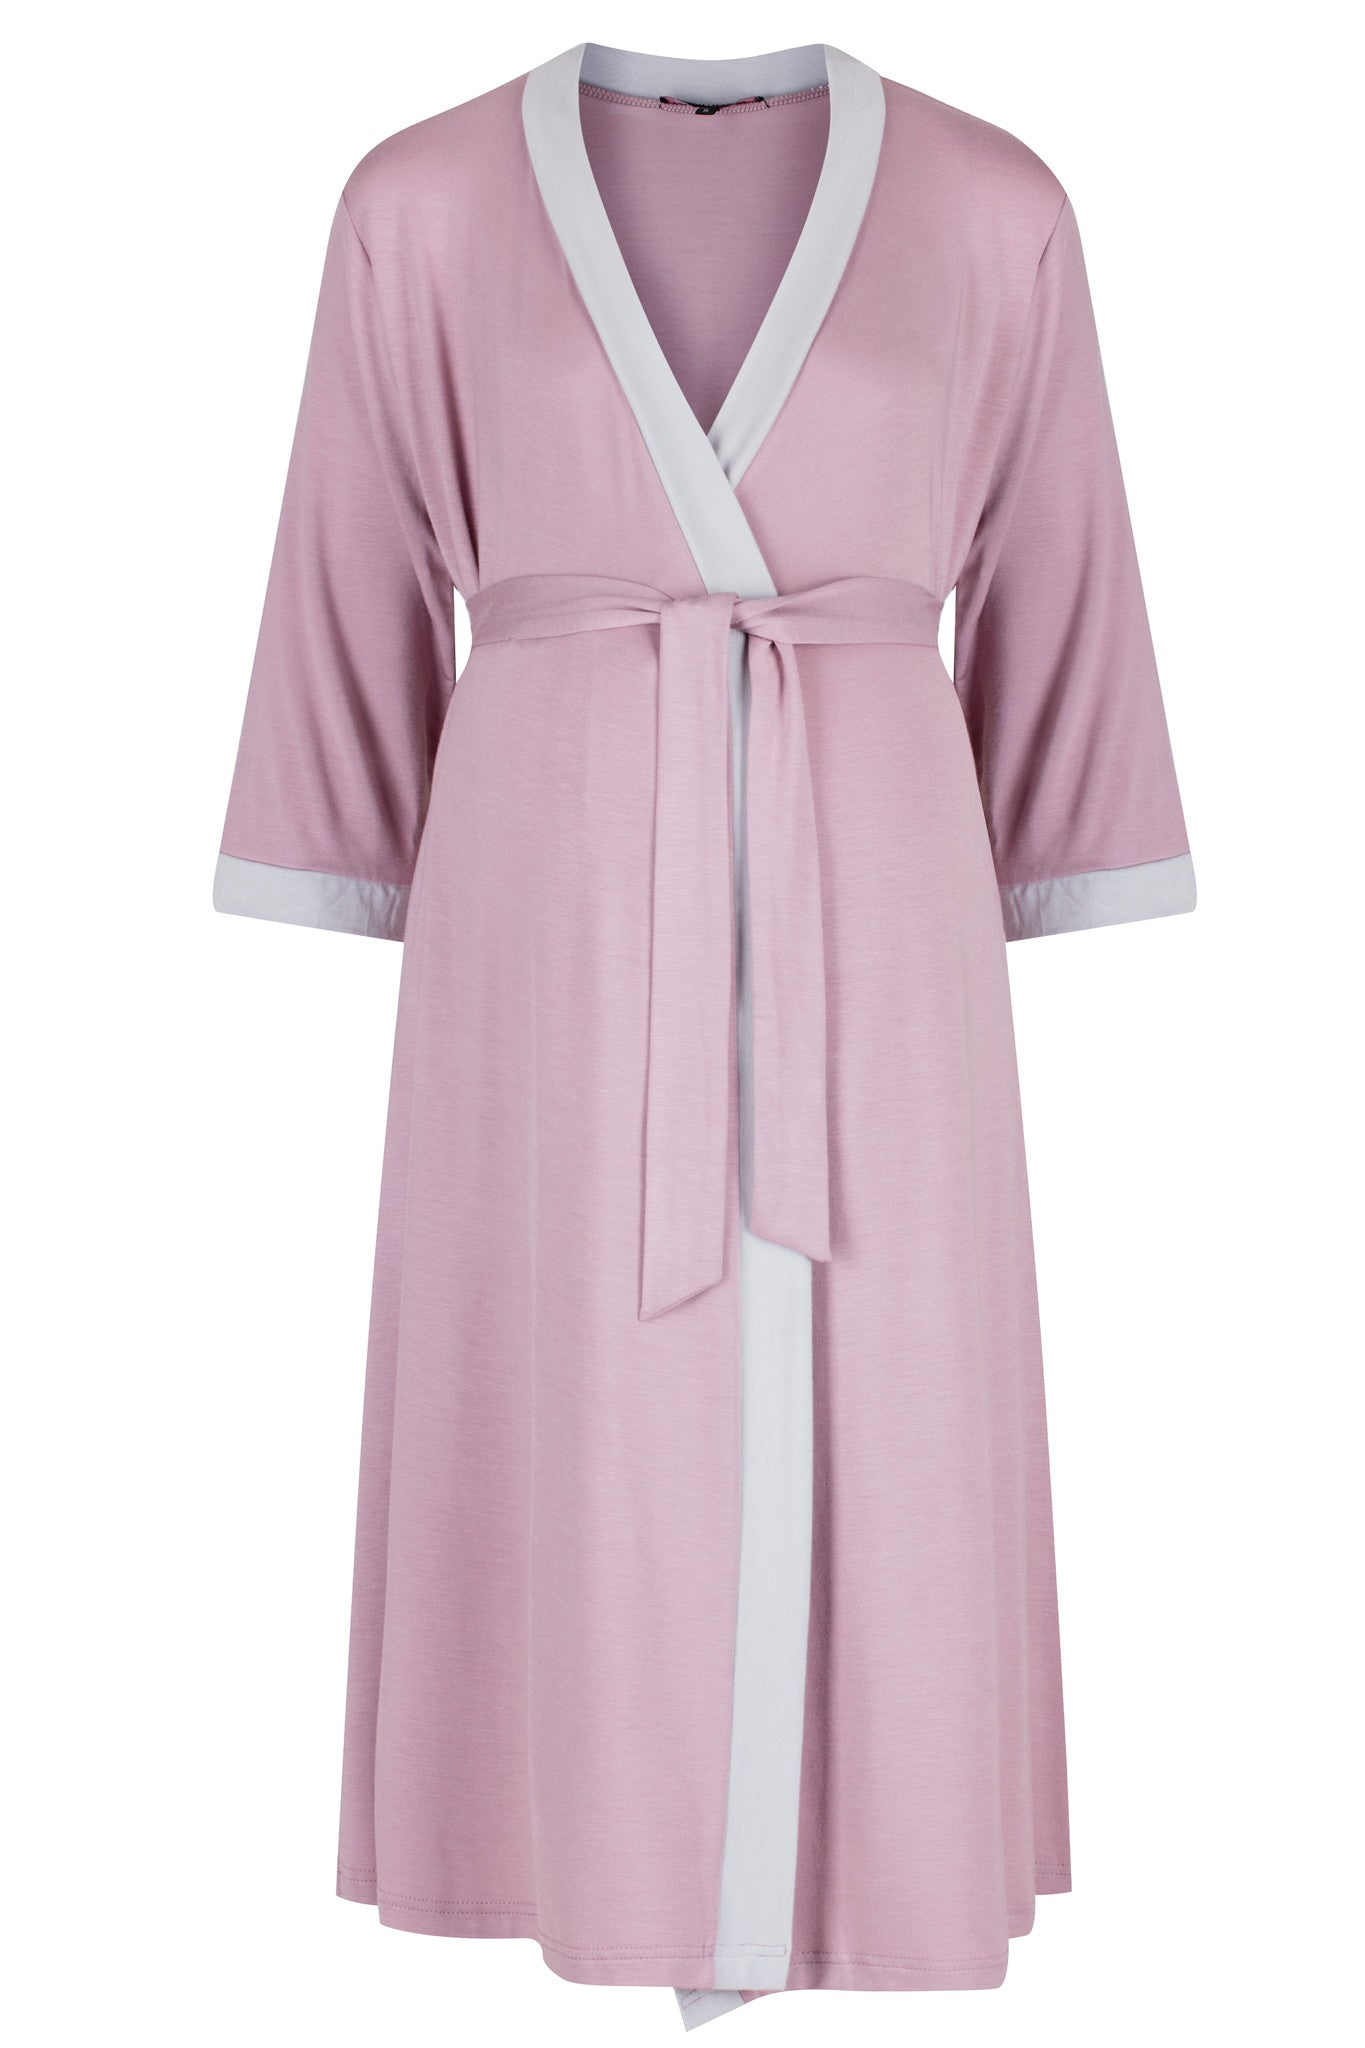 Vogue Dressing Gown - Dusky Pink - MamaMoosh